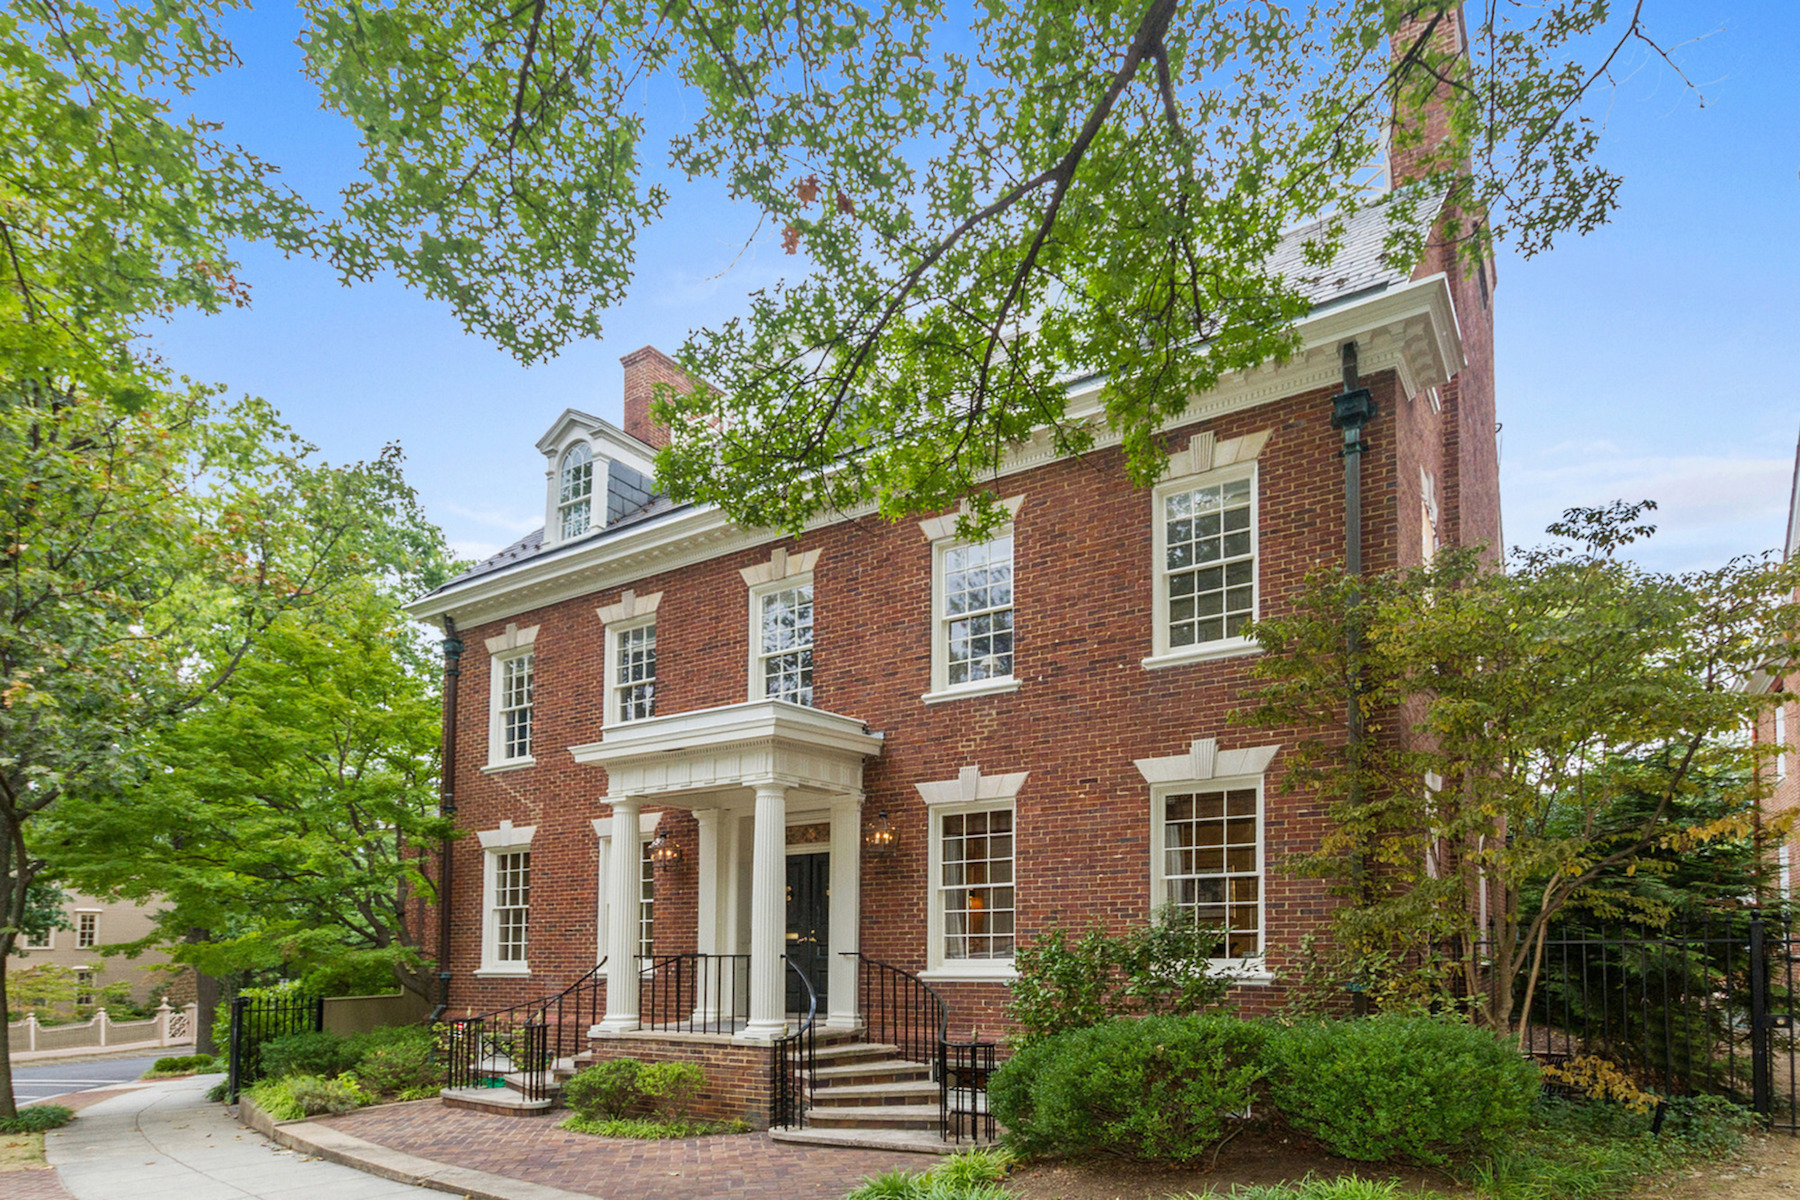 Single Family Home for Active at Kalorama 6 Kalorama Circle Nw Washington, District Of Columbia 20008 United States